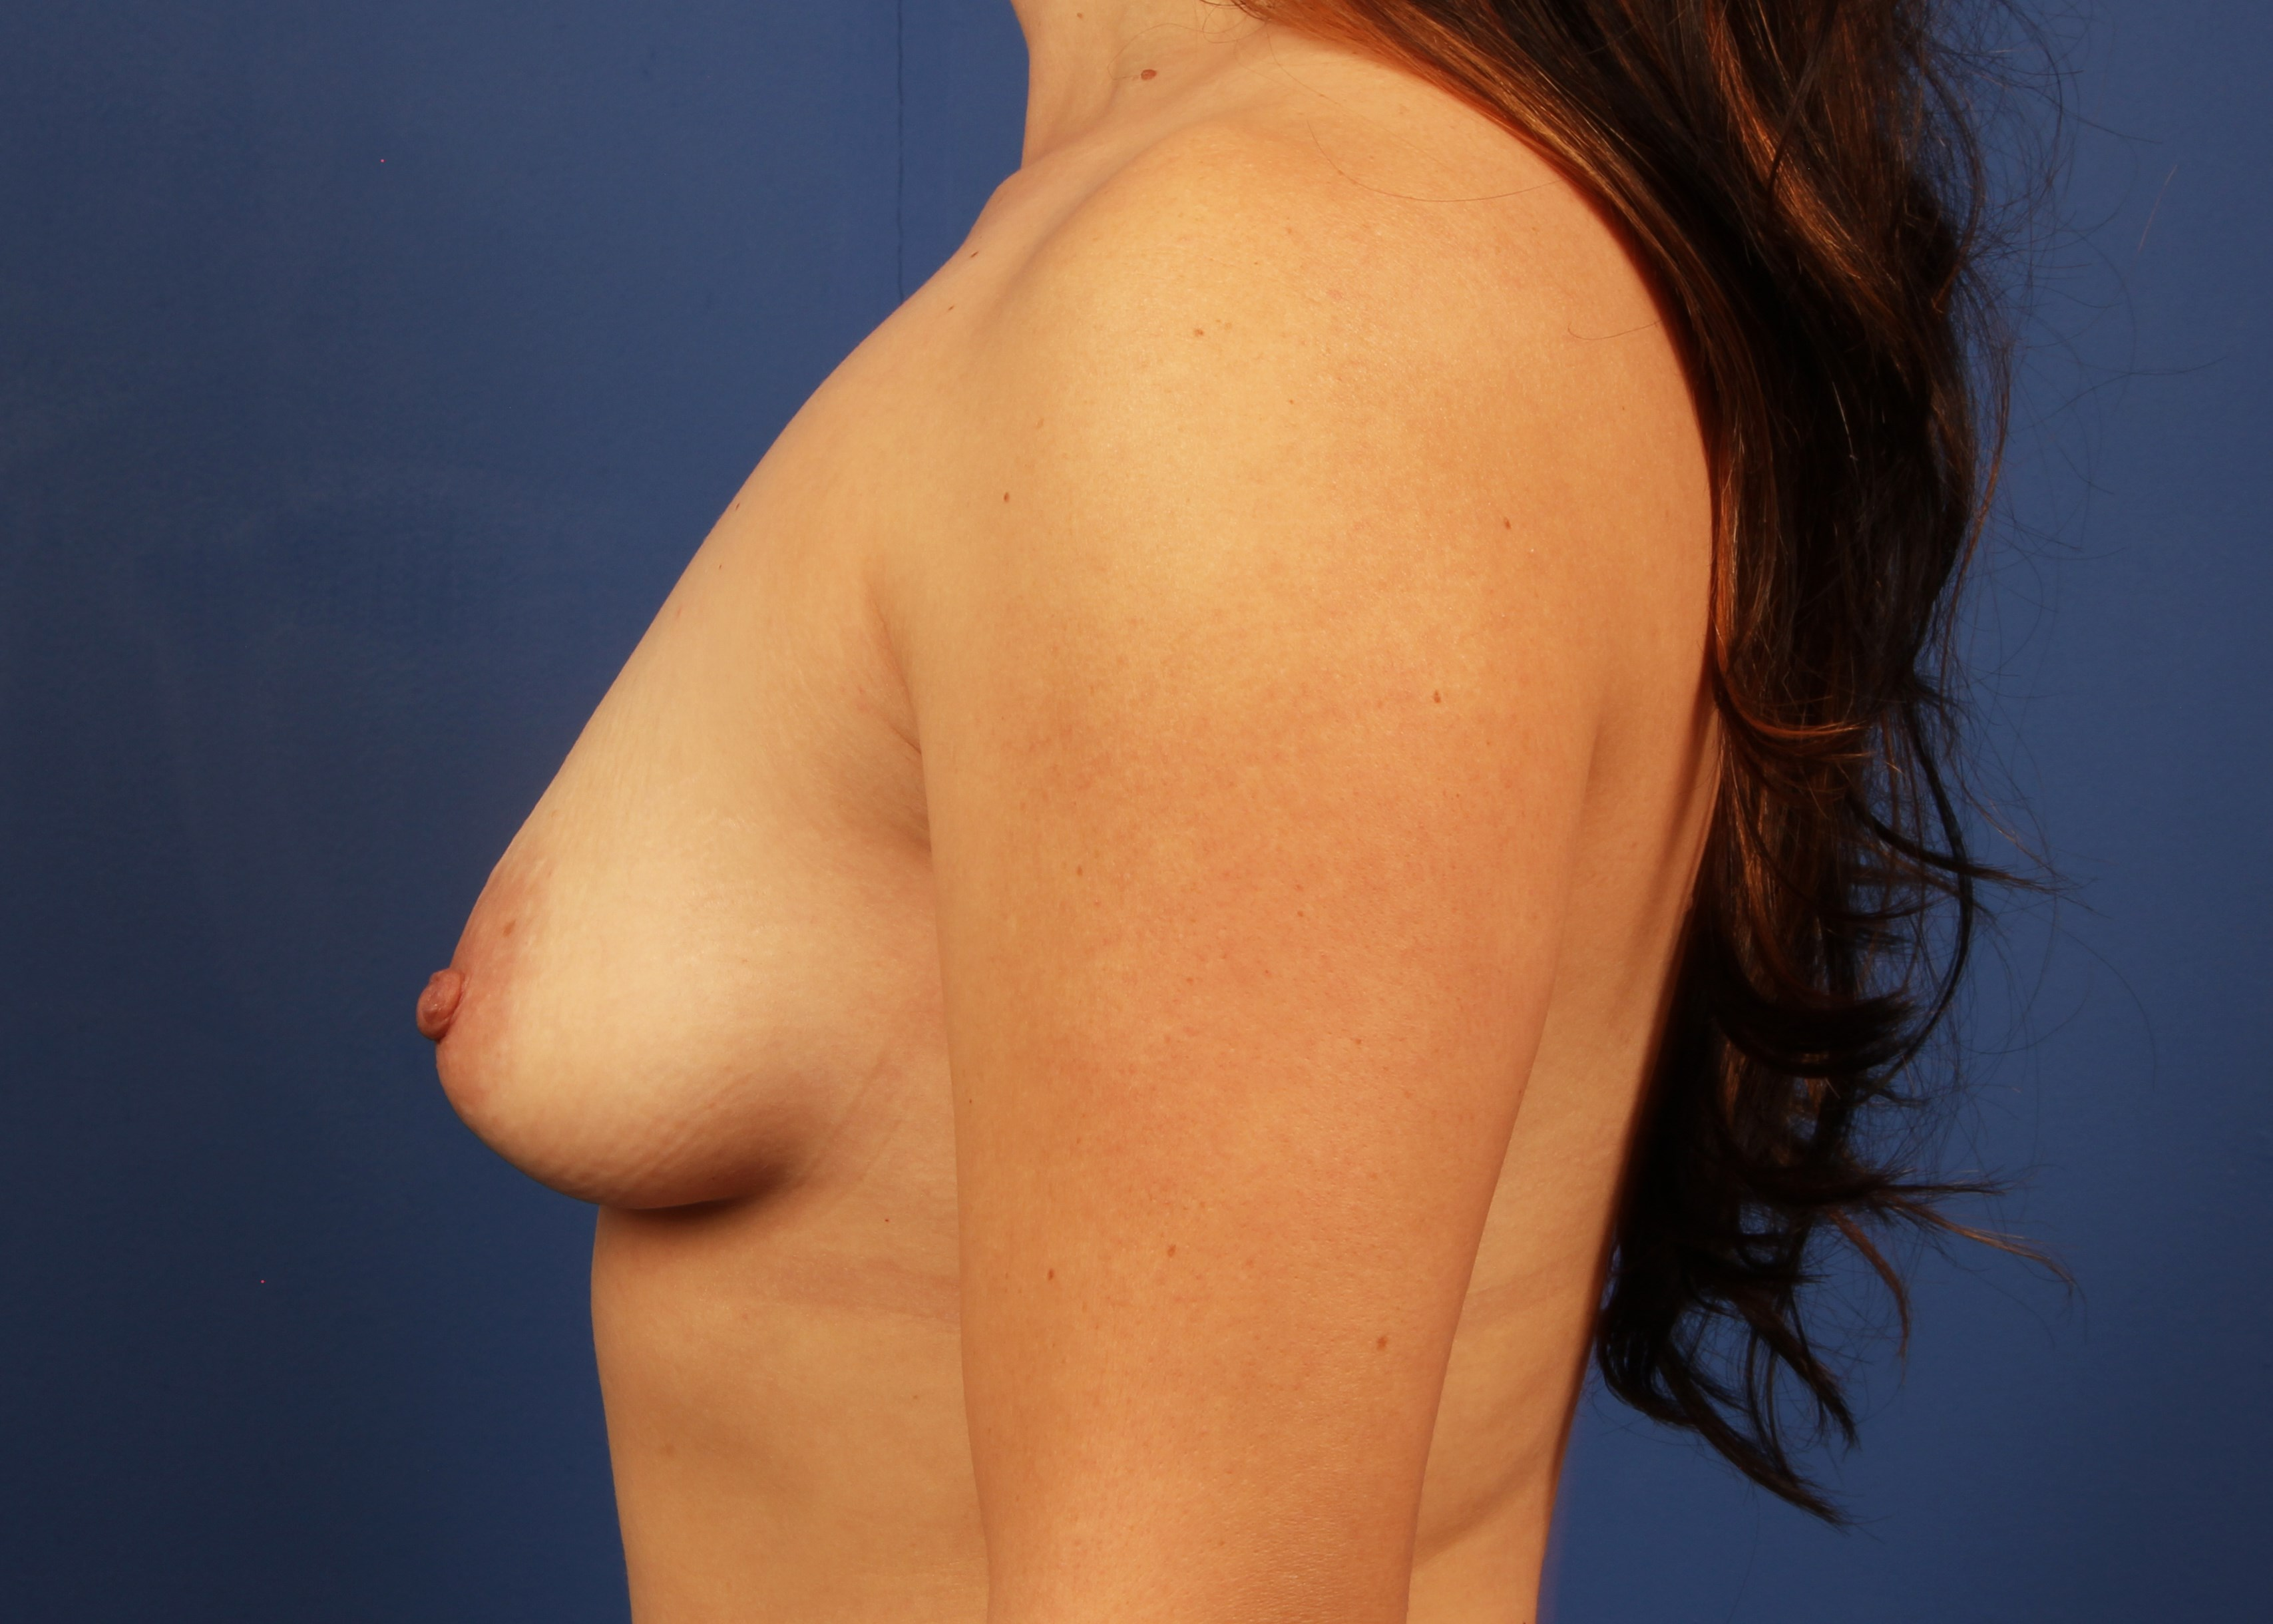 before breast implants Left View - Left View